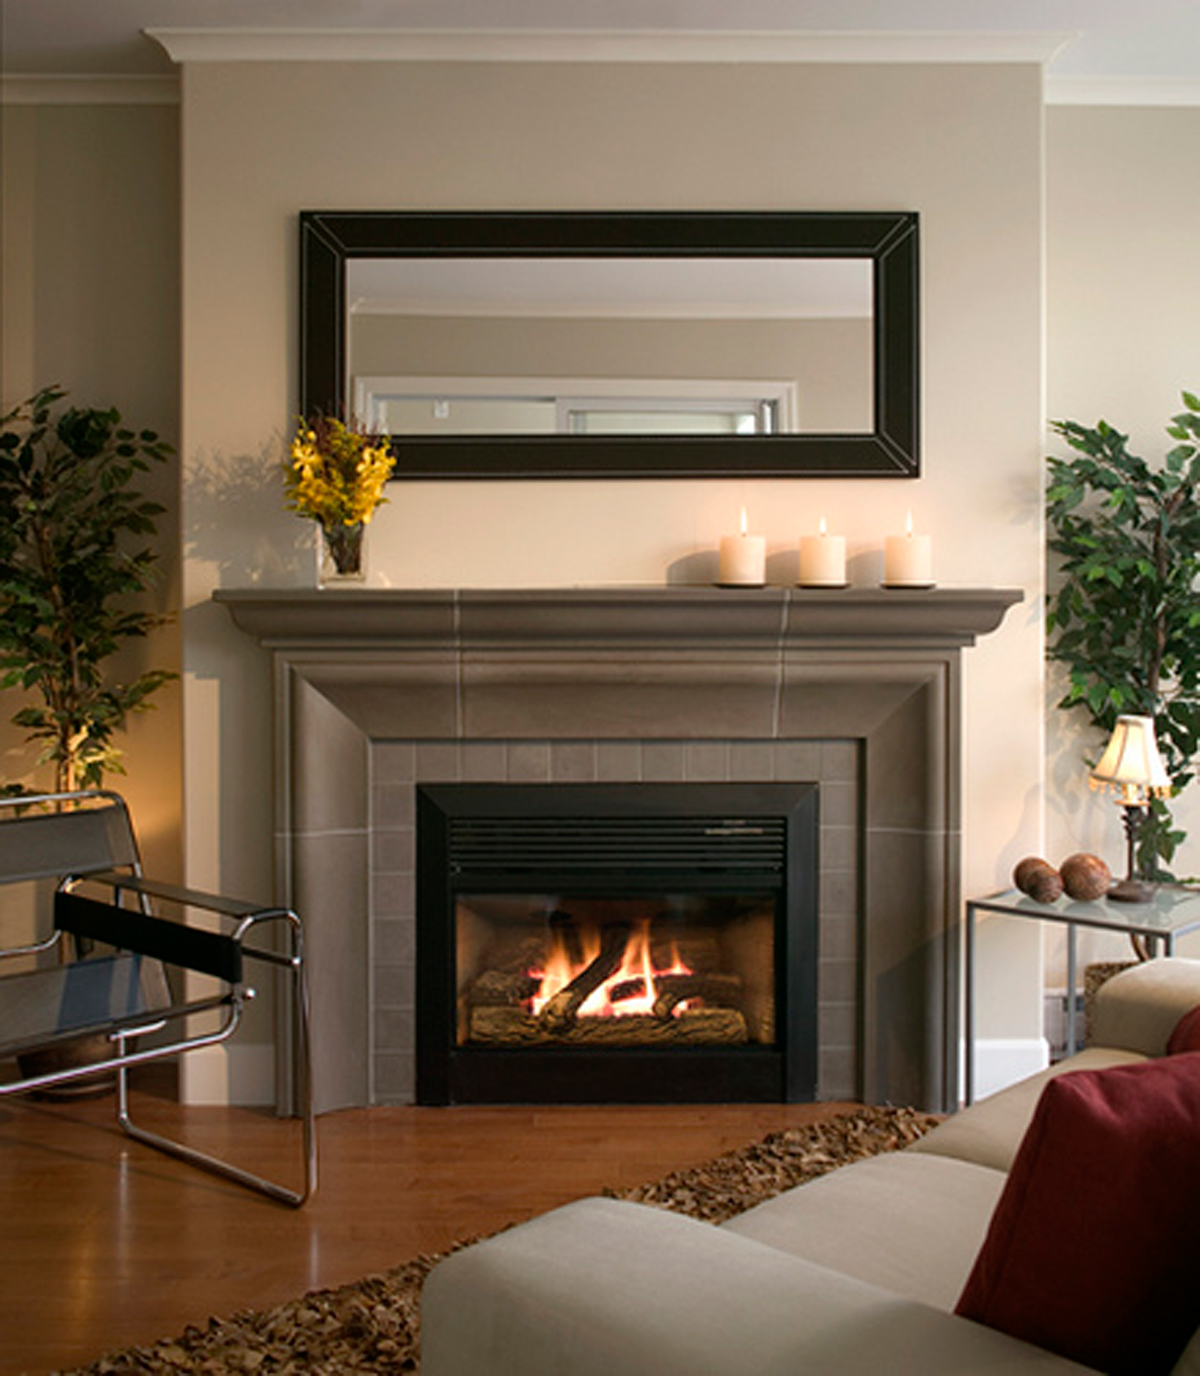 Cool Design For A Living Room: Cool Fireplace Designs